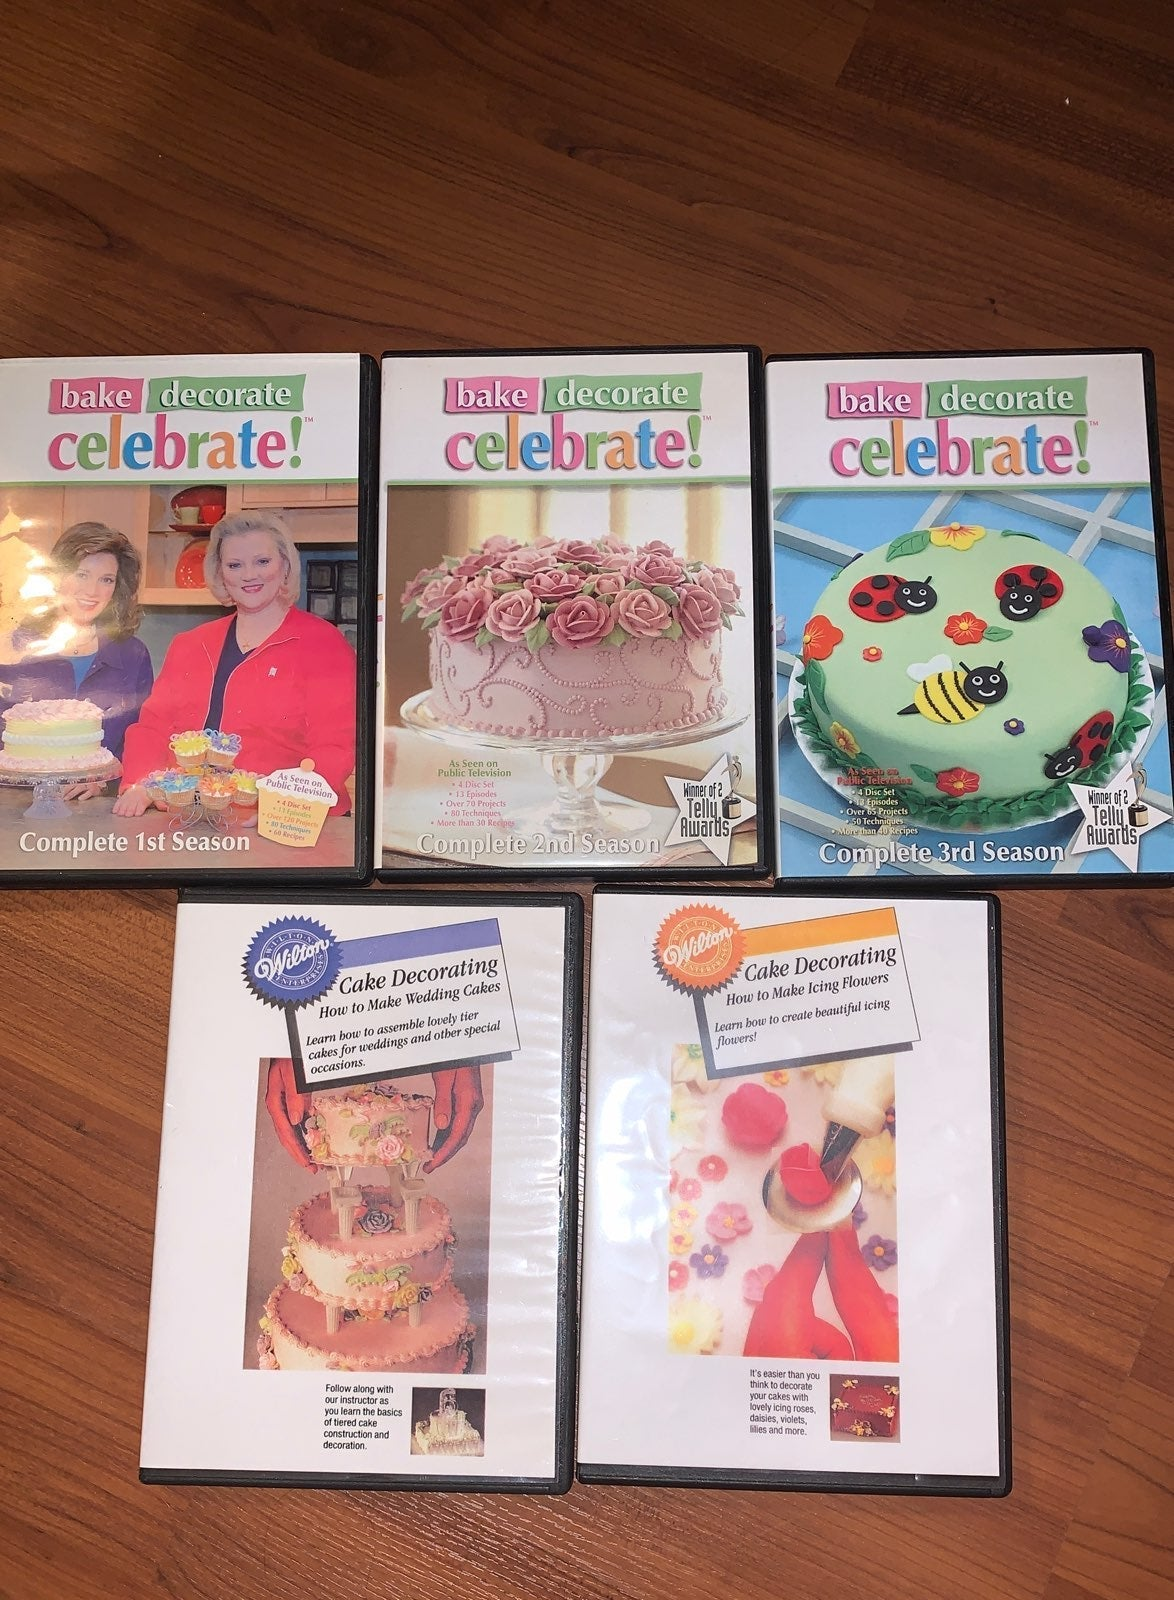 Wilton cake decorating Dvds